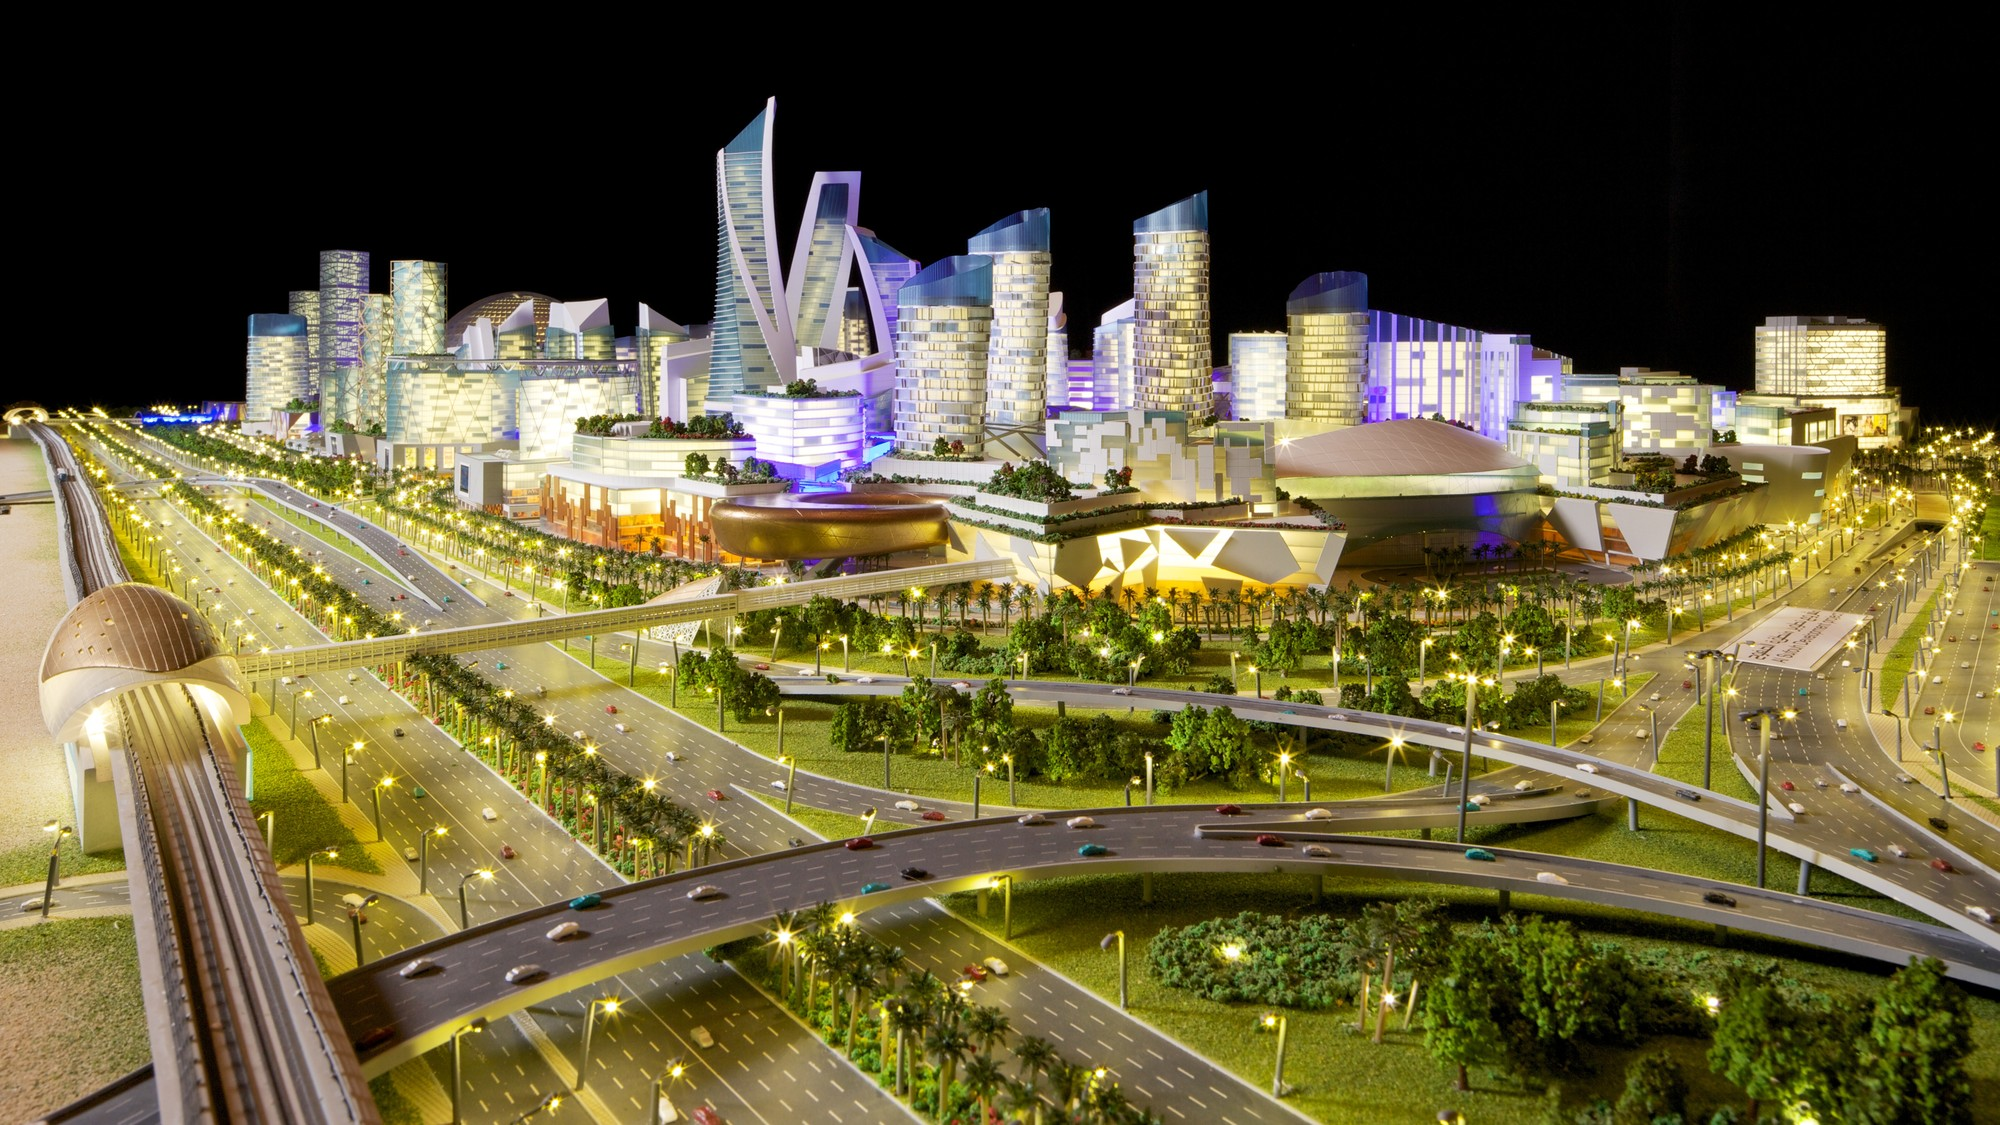 Dubai Plans Mall of the World, the First Ever 'Temperature Controlled City', View from Sheikh Zayed Road. Image Courtesy of Dubai Holding